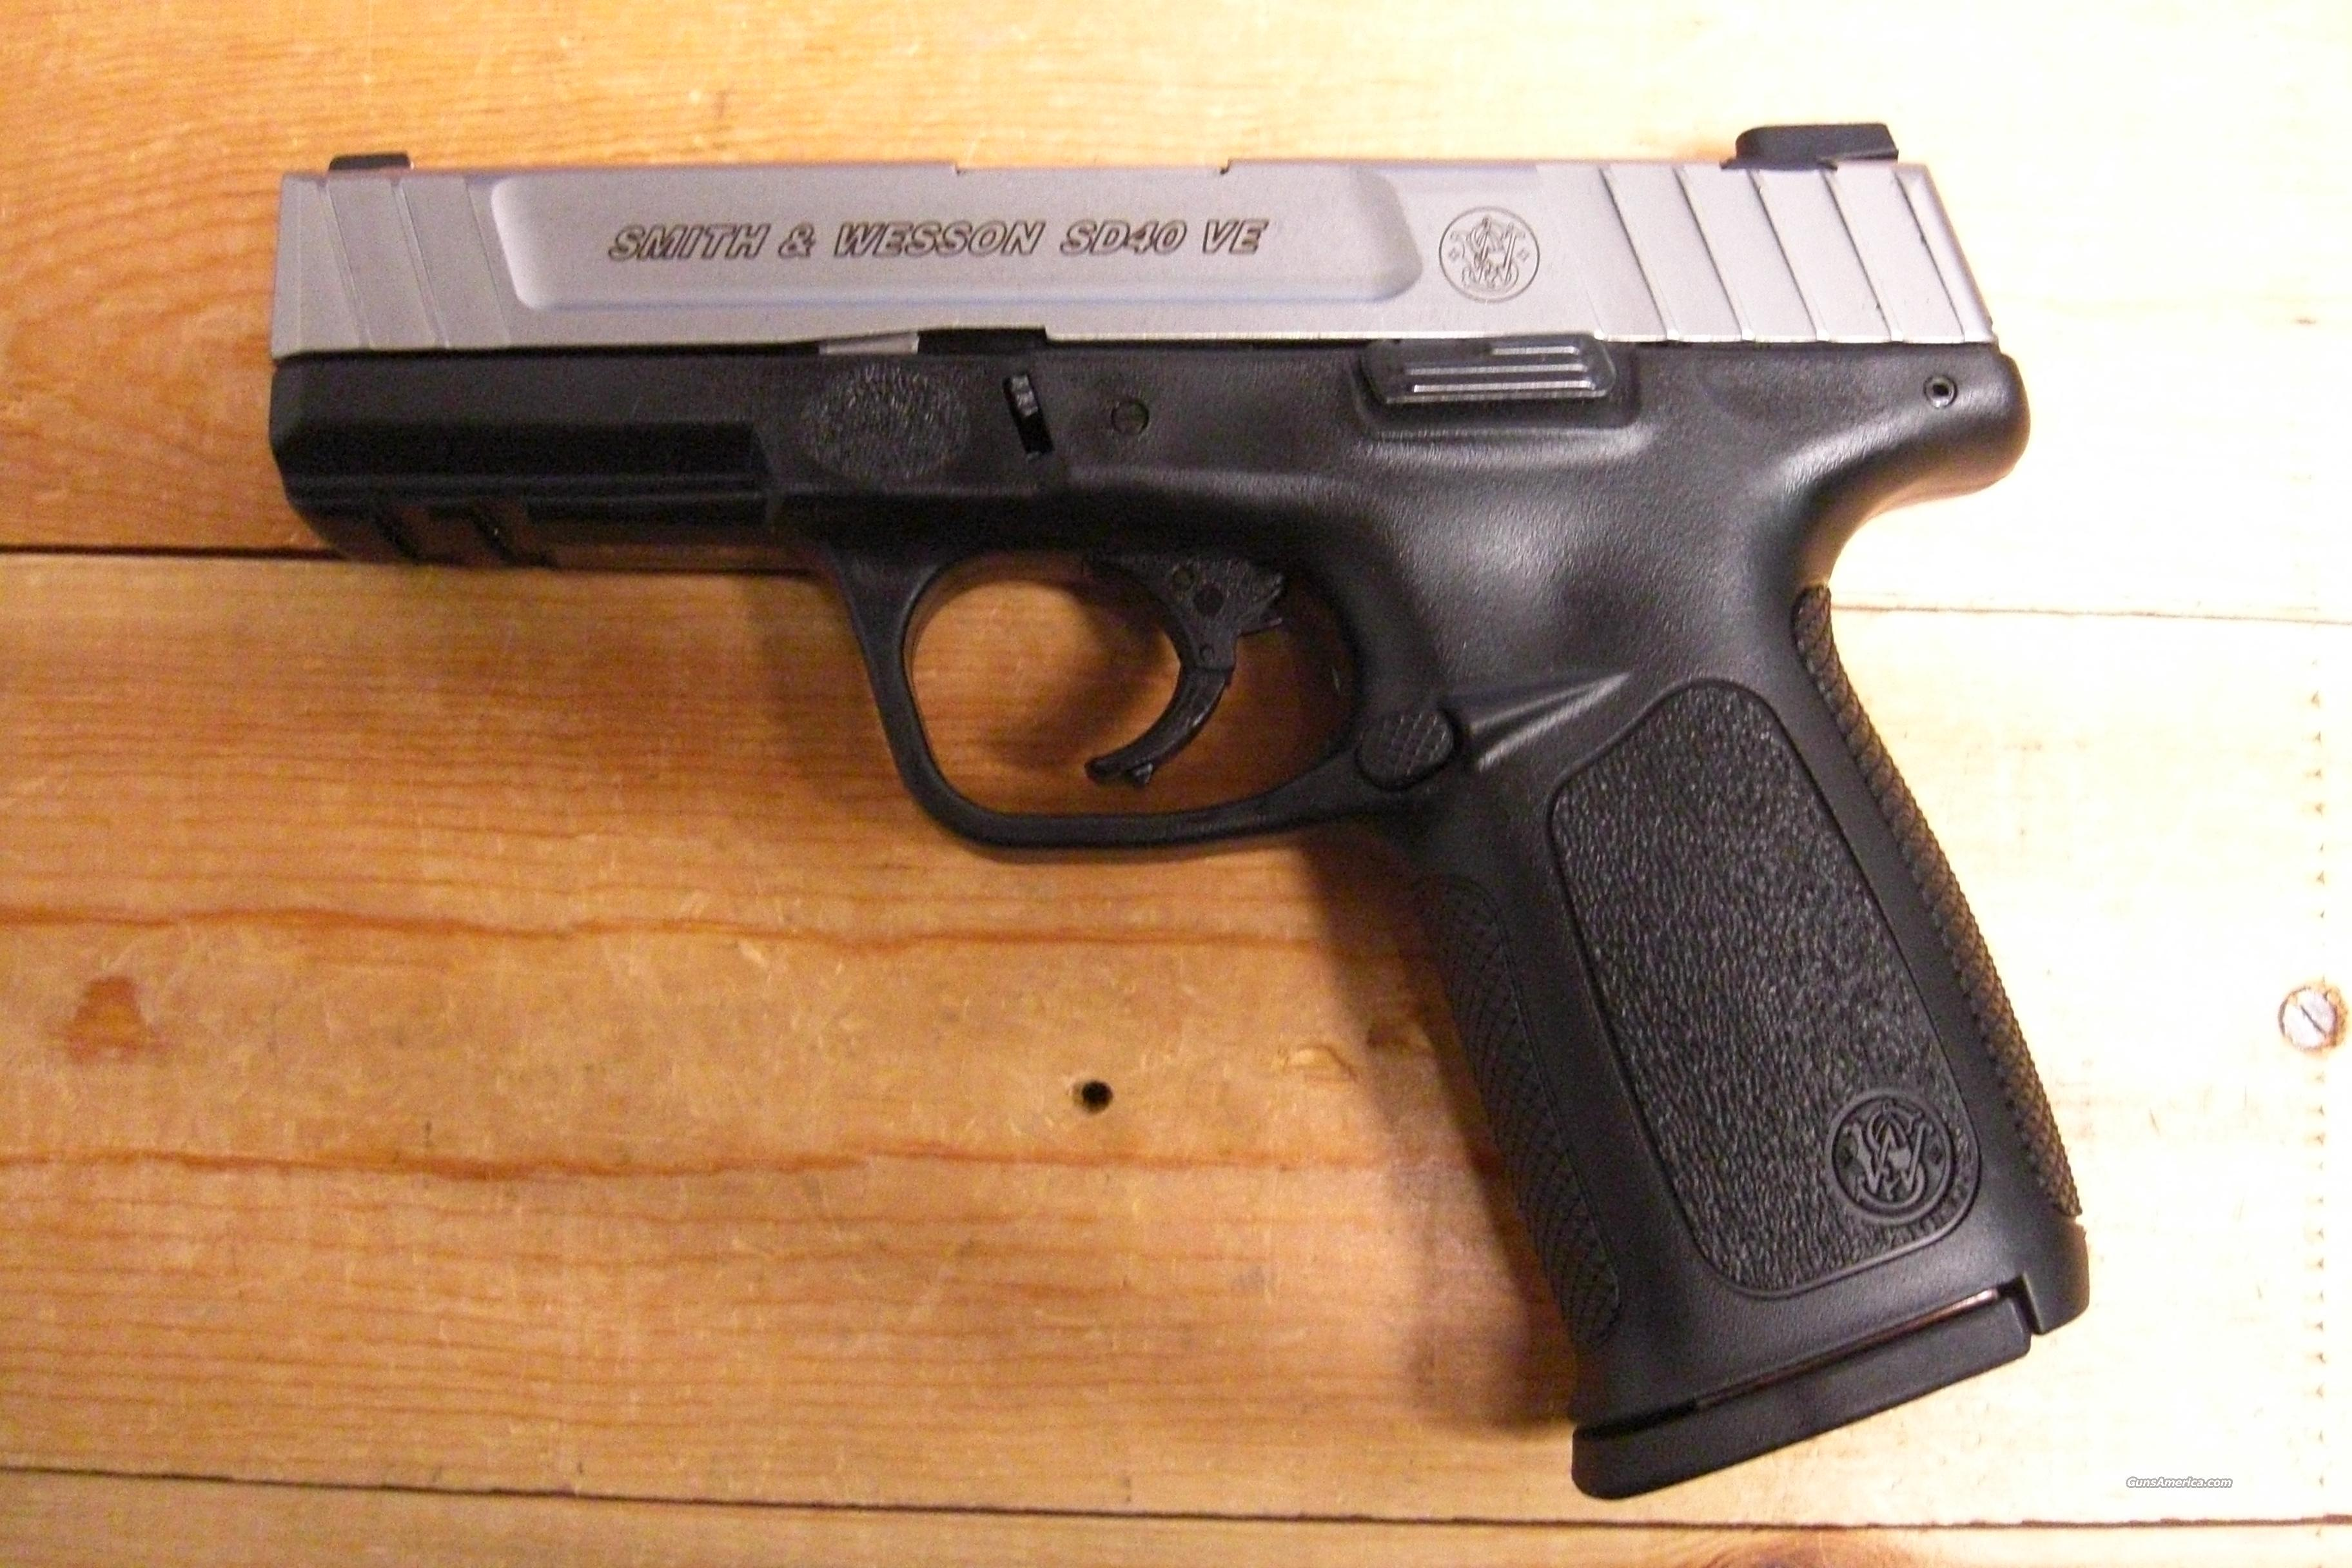 SD40 VE  w/stainless slide   Guns > Pistols > Smith & Wesson Pistols - Autos > Polymer Frame